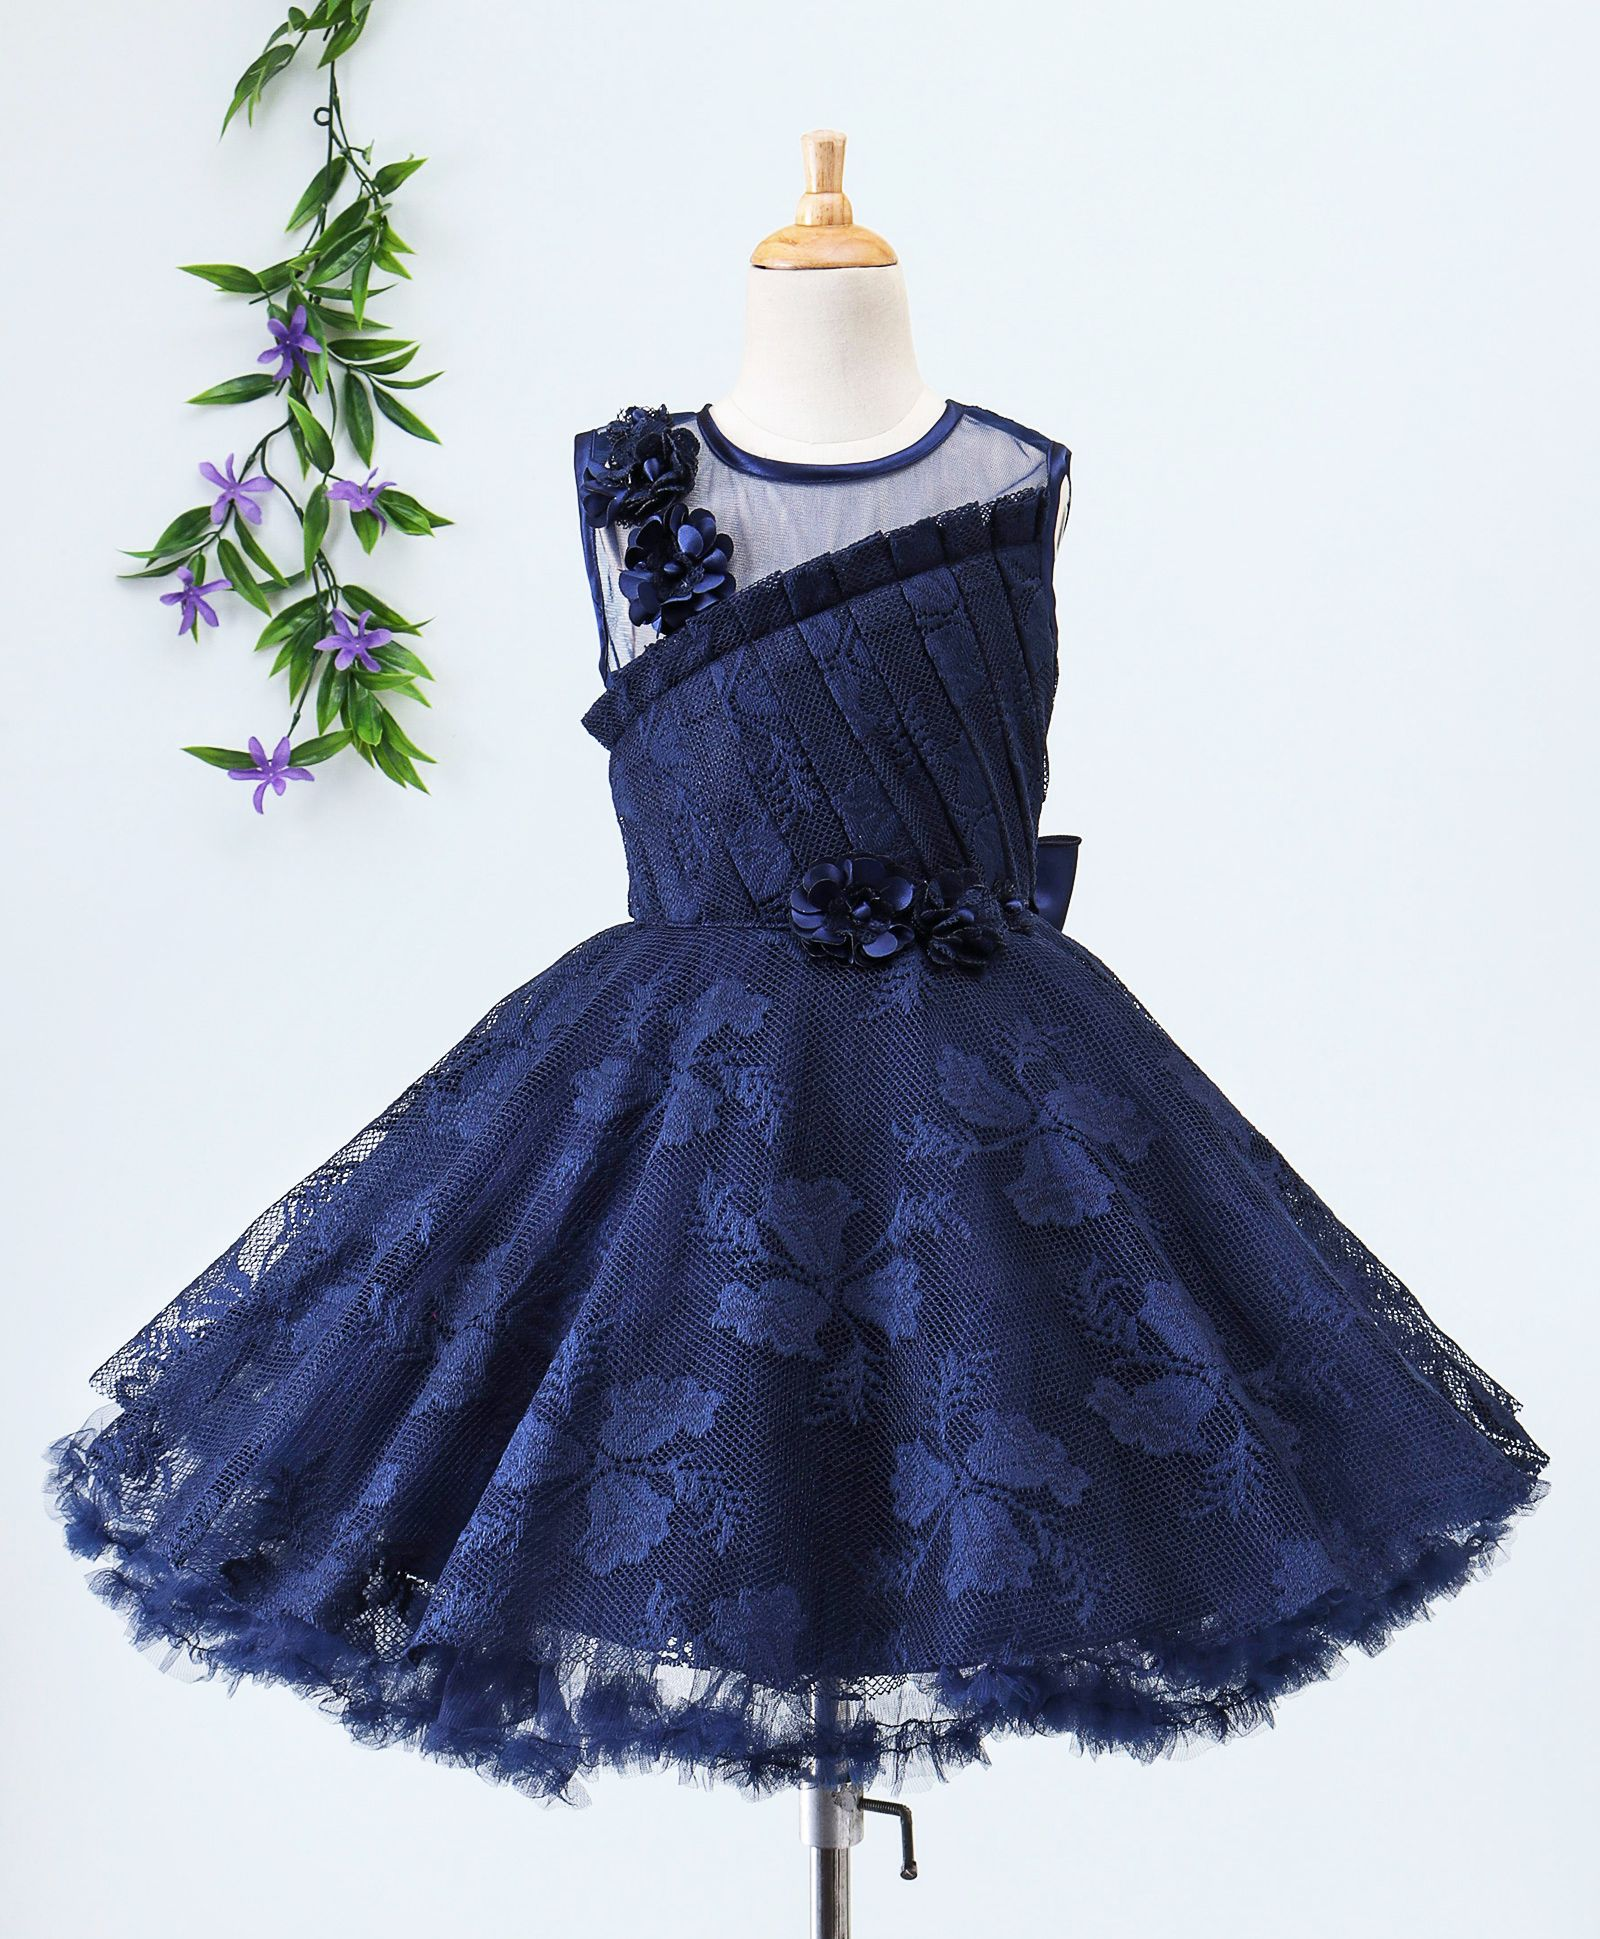 ef9cdde43124 Buy Babyhug Sleeveless Netted Jacquard Party Wear Frock With Floral ...